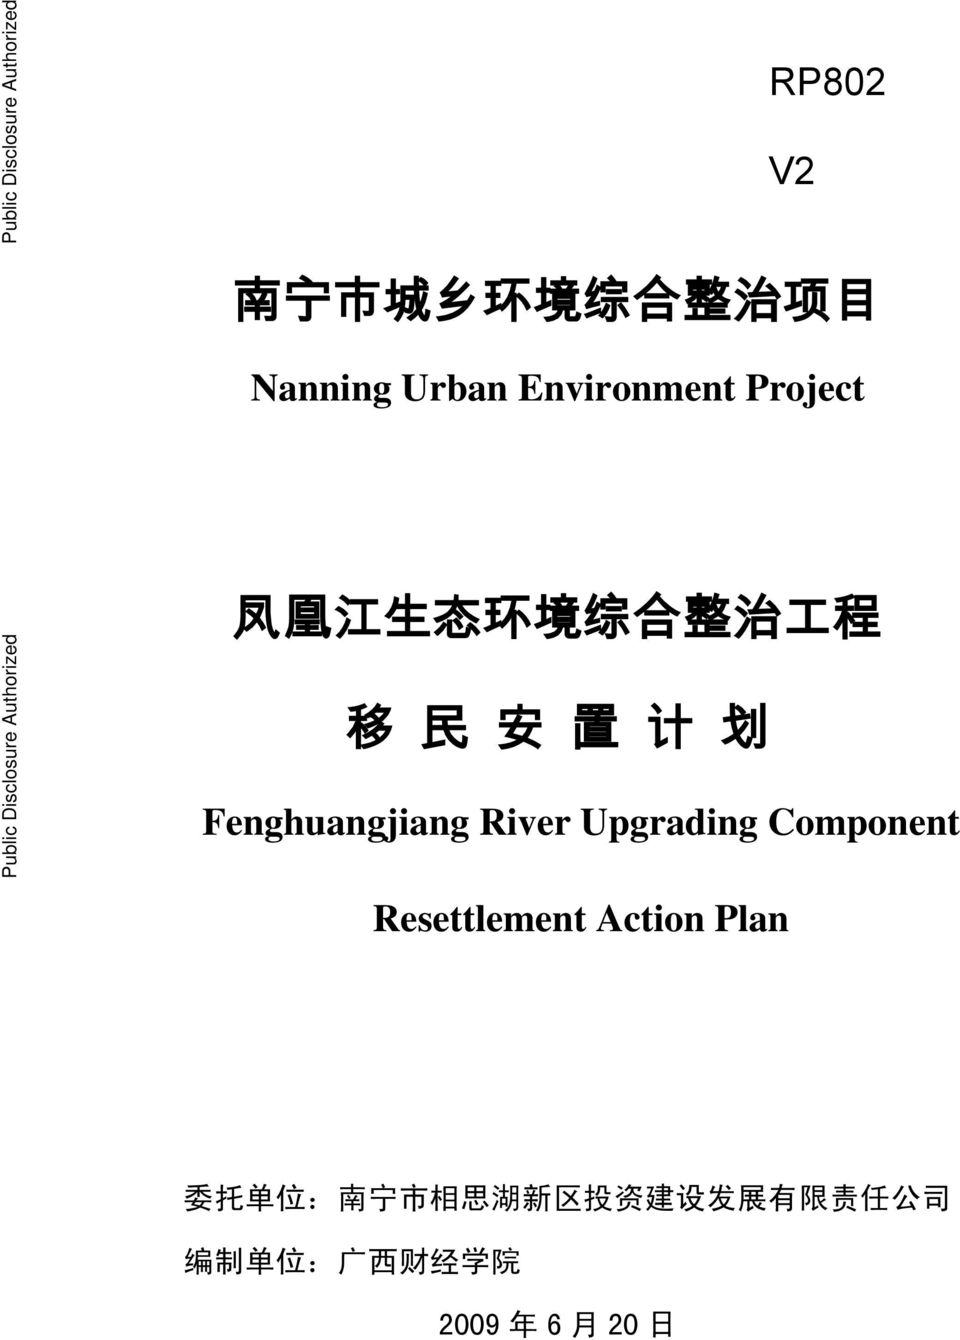 安 置 计 划 Fenghuangjiang River Upgrading Component Resettlement Action Plan Public Disclosure